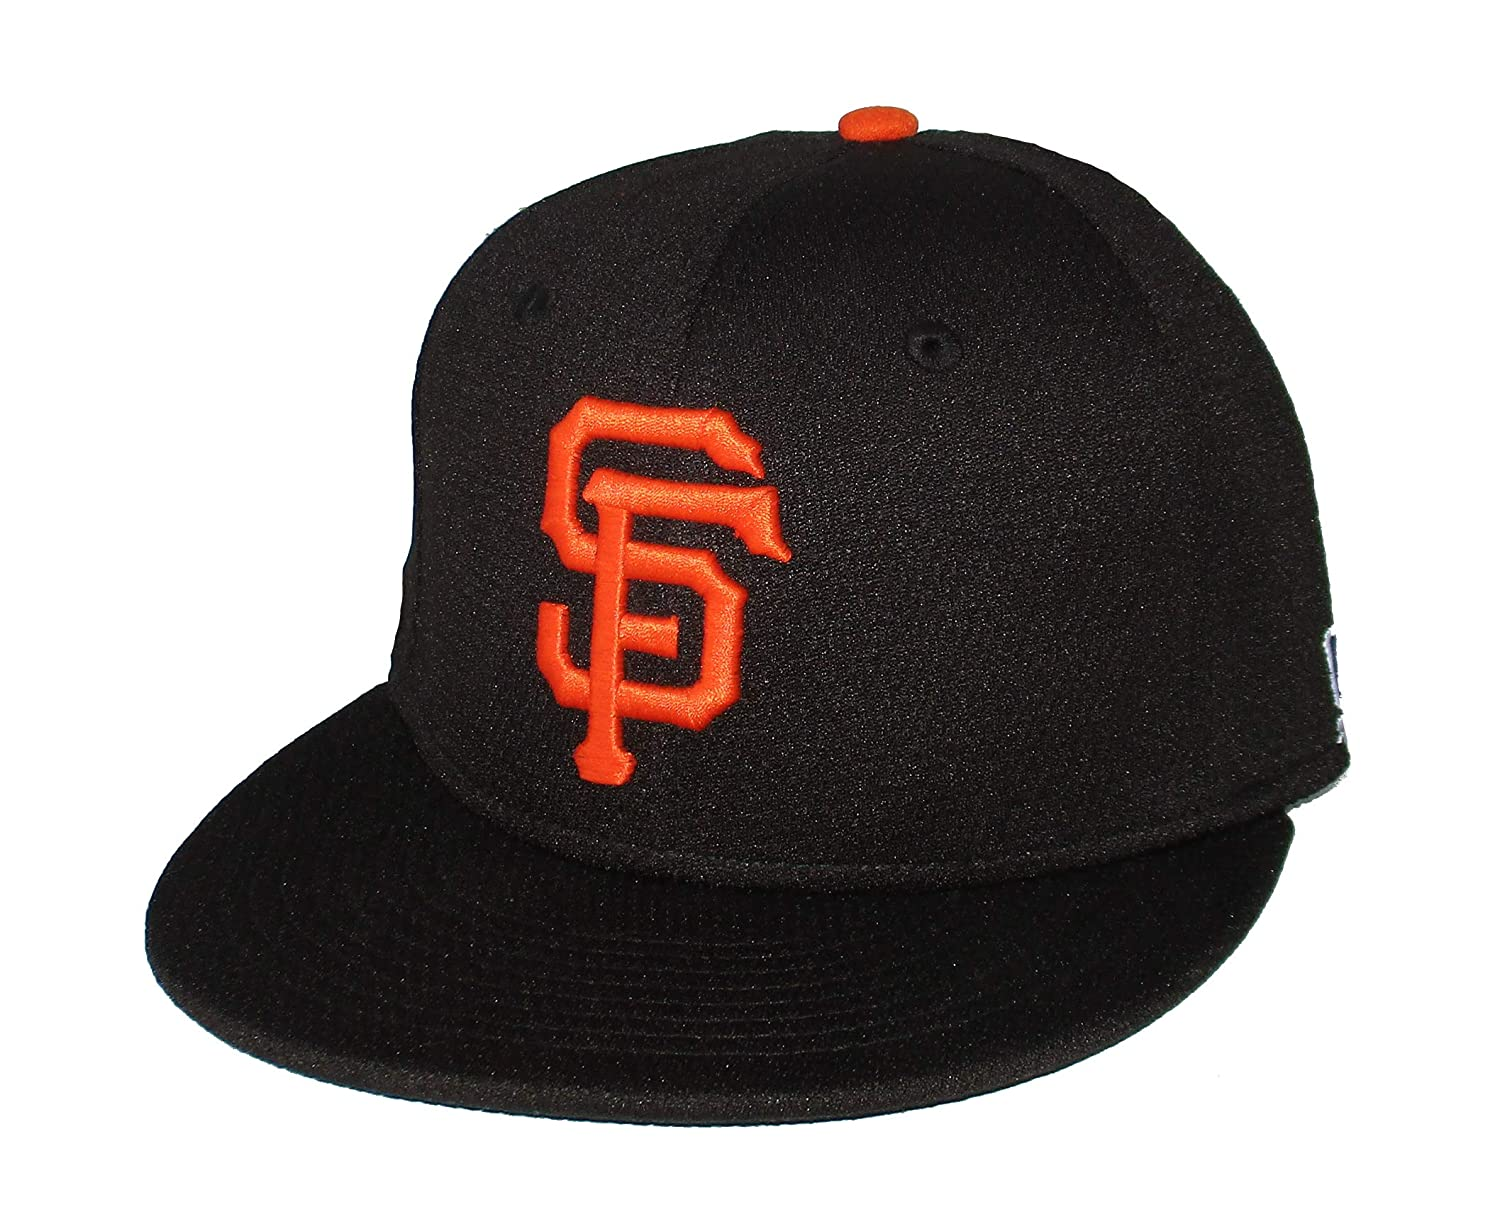 28d24eecdde7c Amazon.com   OC Sports San Francisco Giants Youth Cool and Dry Adjustable Hat  Cap - Black   Sports   Outdoors